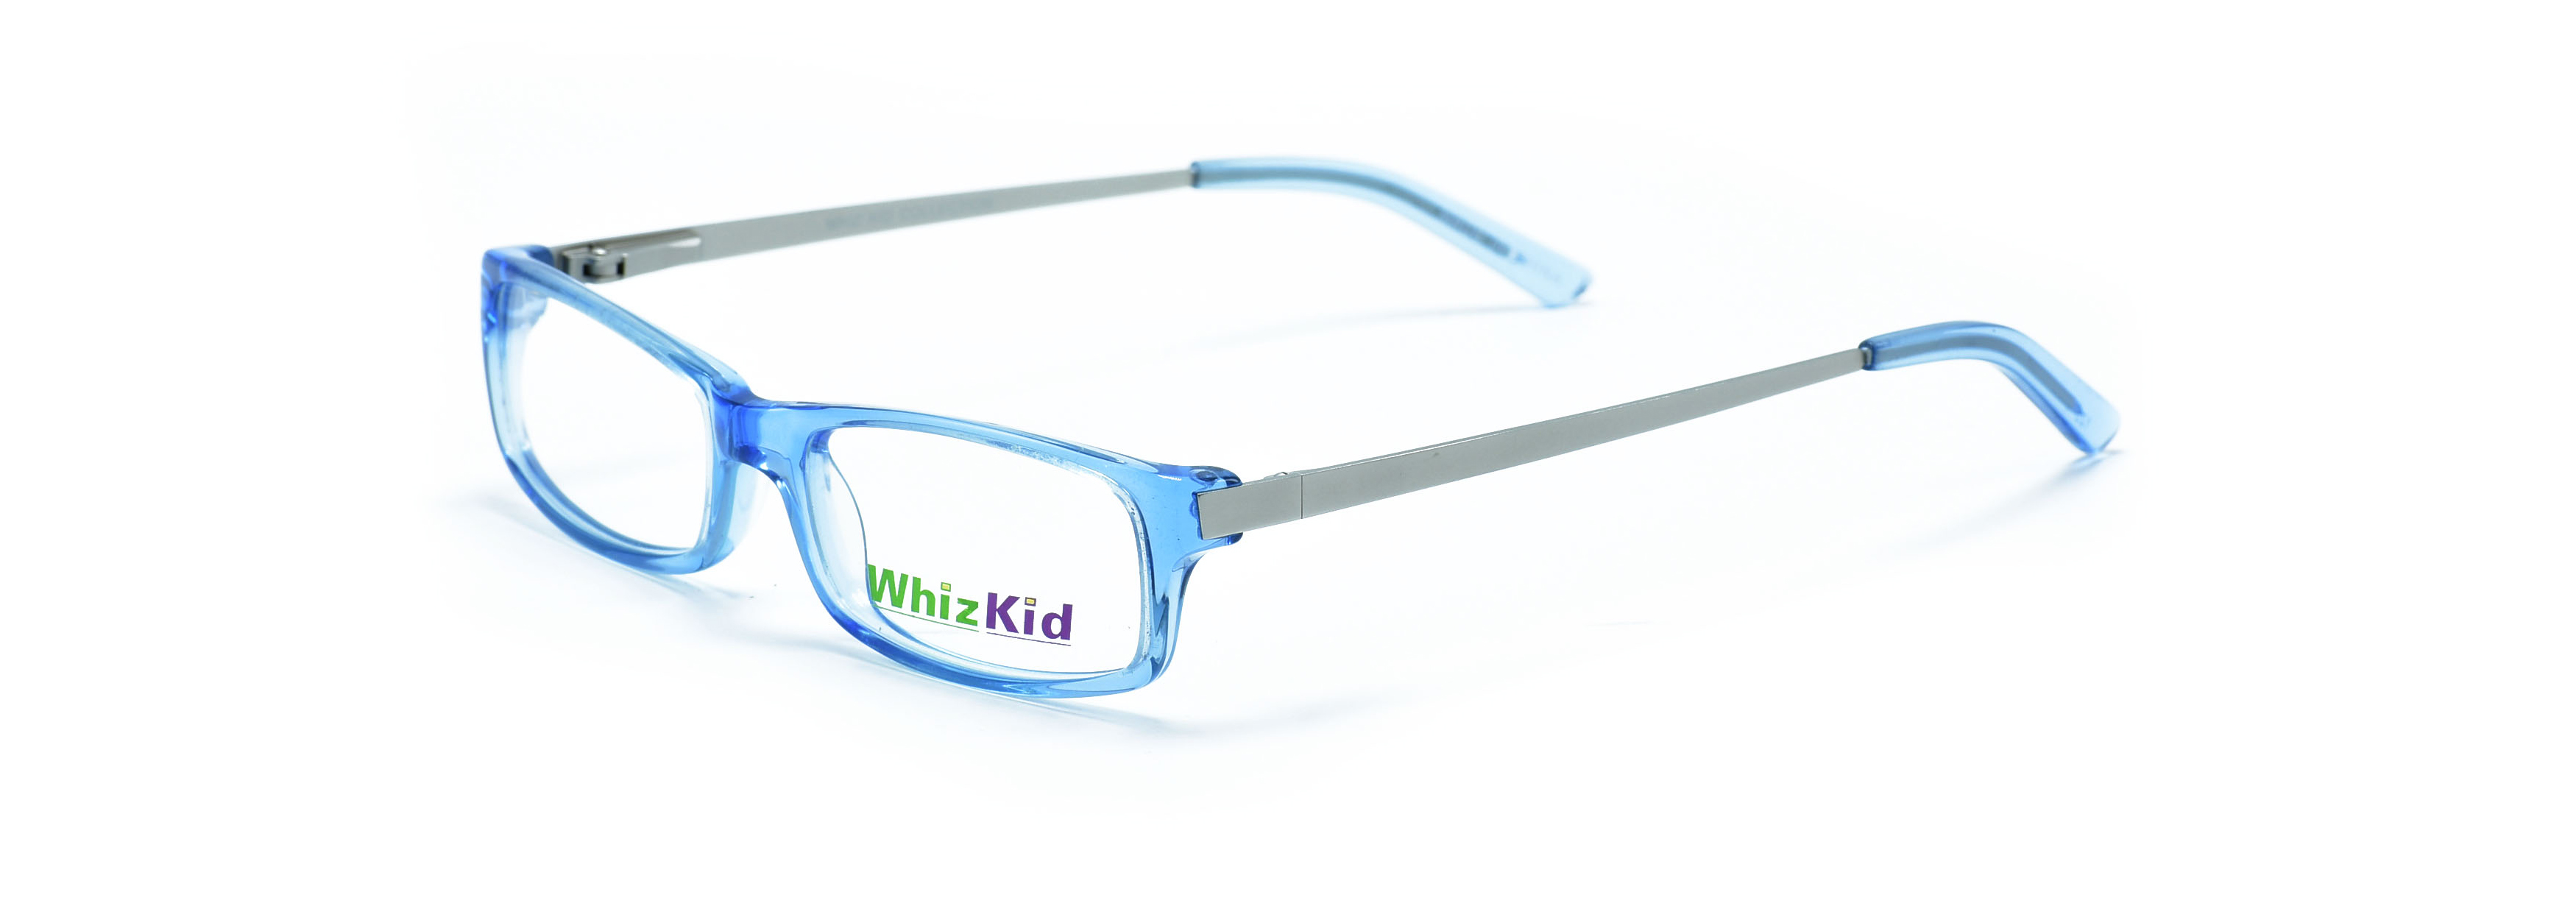 WHIZ KID 37 CRYSTAL BLUE 4715